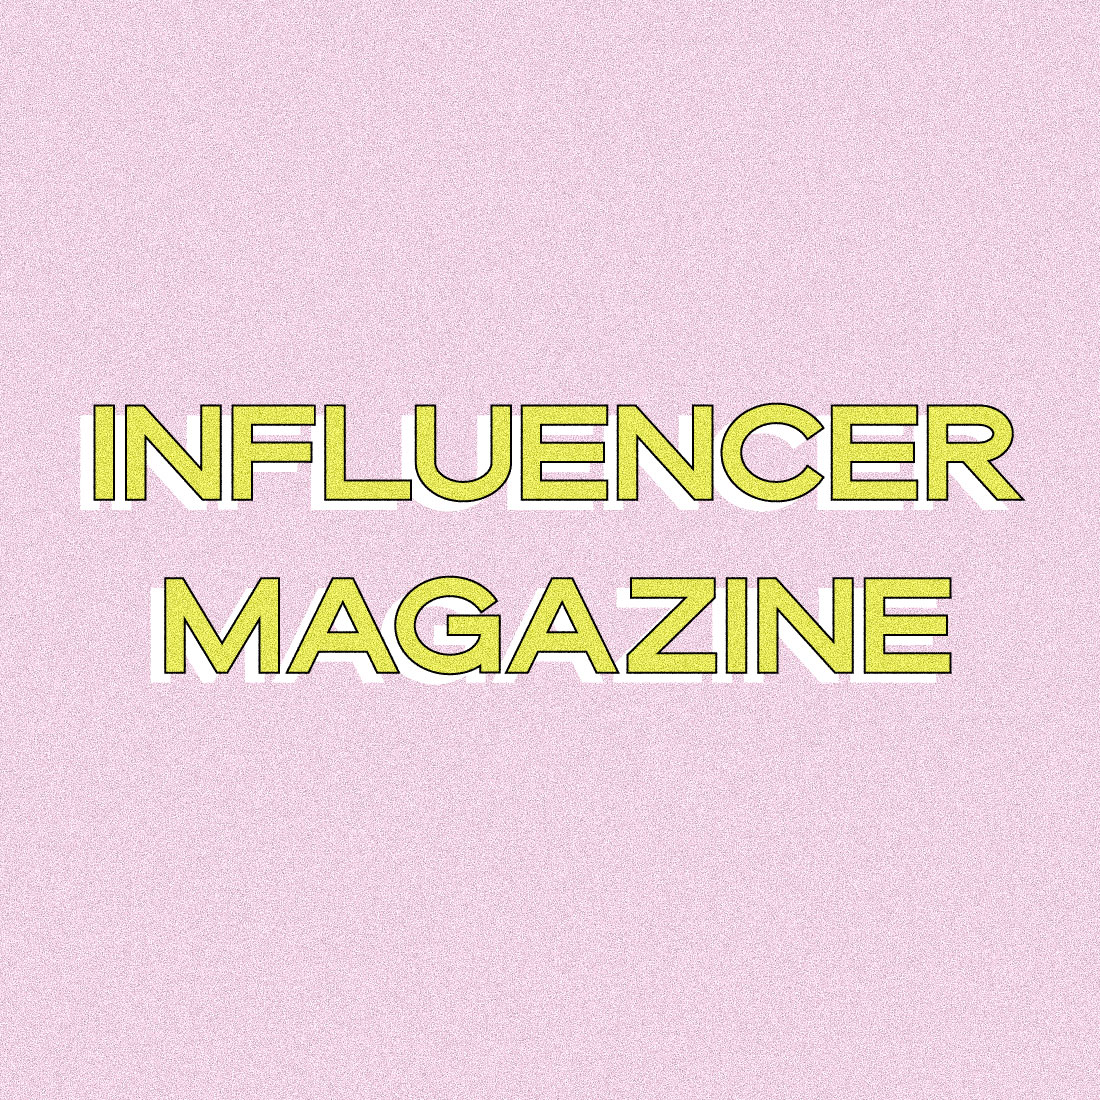 INFLUENCER MAGAZINE